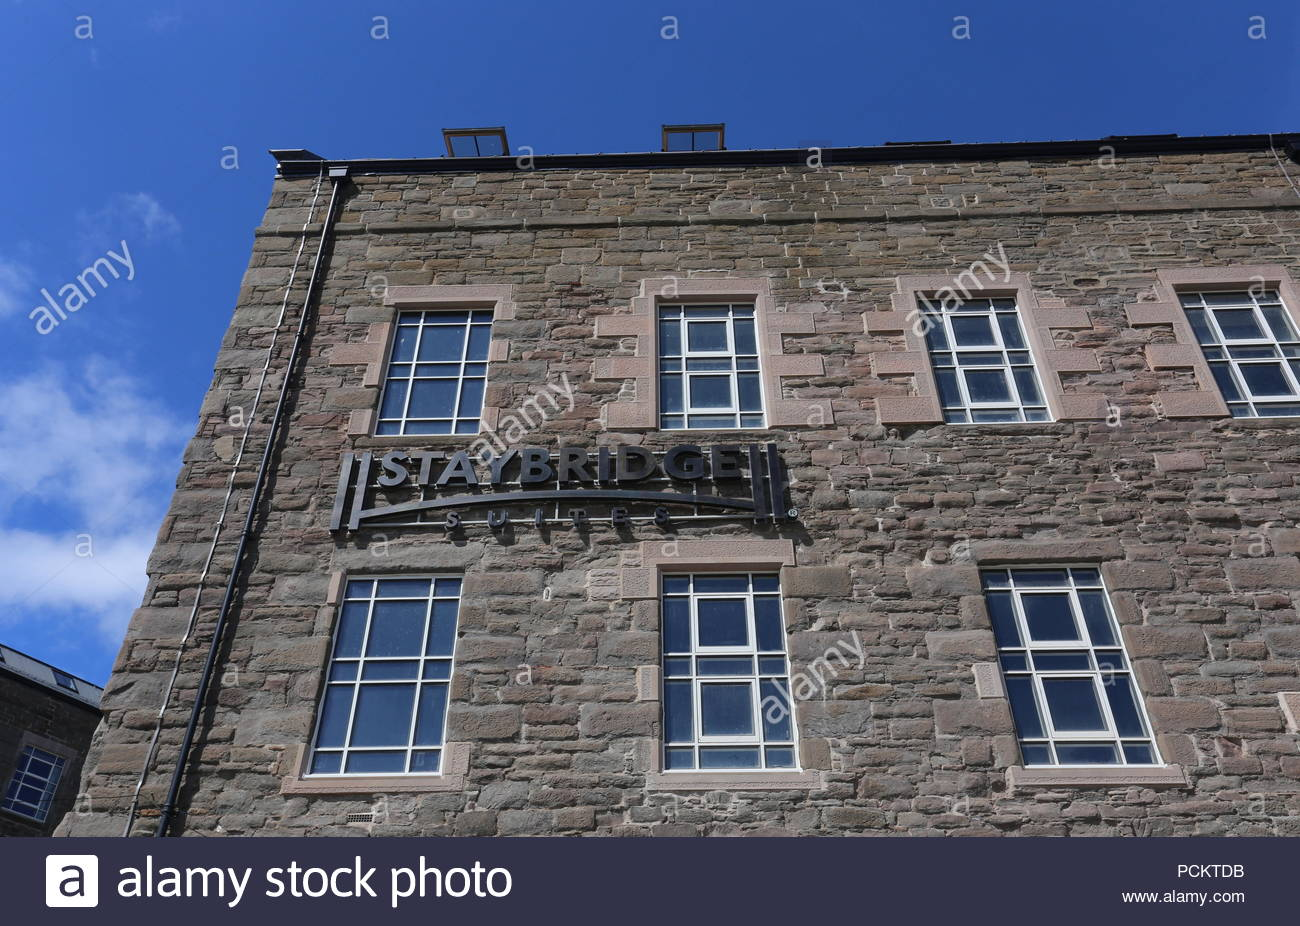 Former Baxter Brothers Mills being refurbished into Hotel Indigo and Staybridge Suites Dundee Scotland  August 2018 - Stock Image